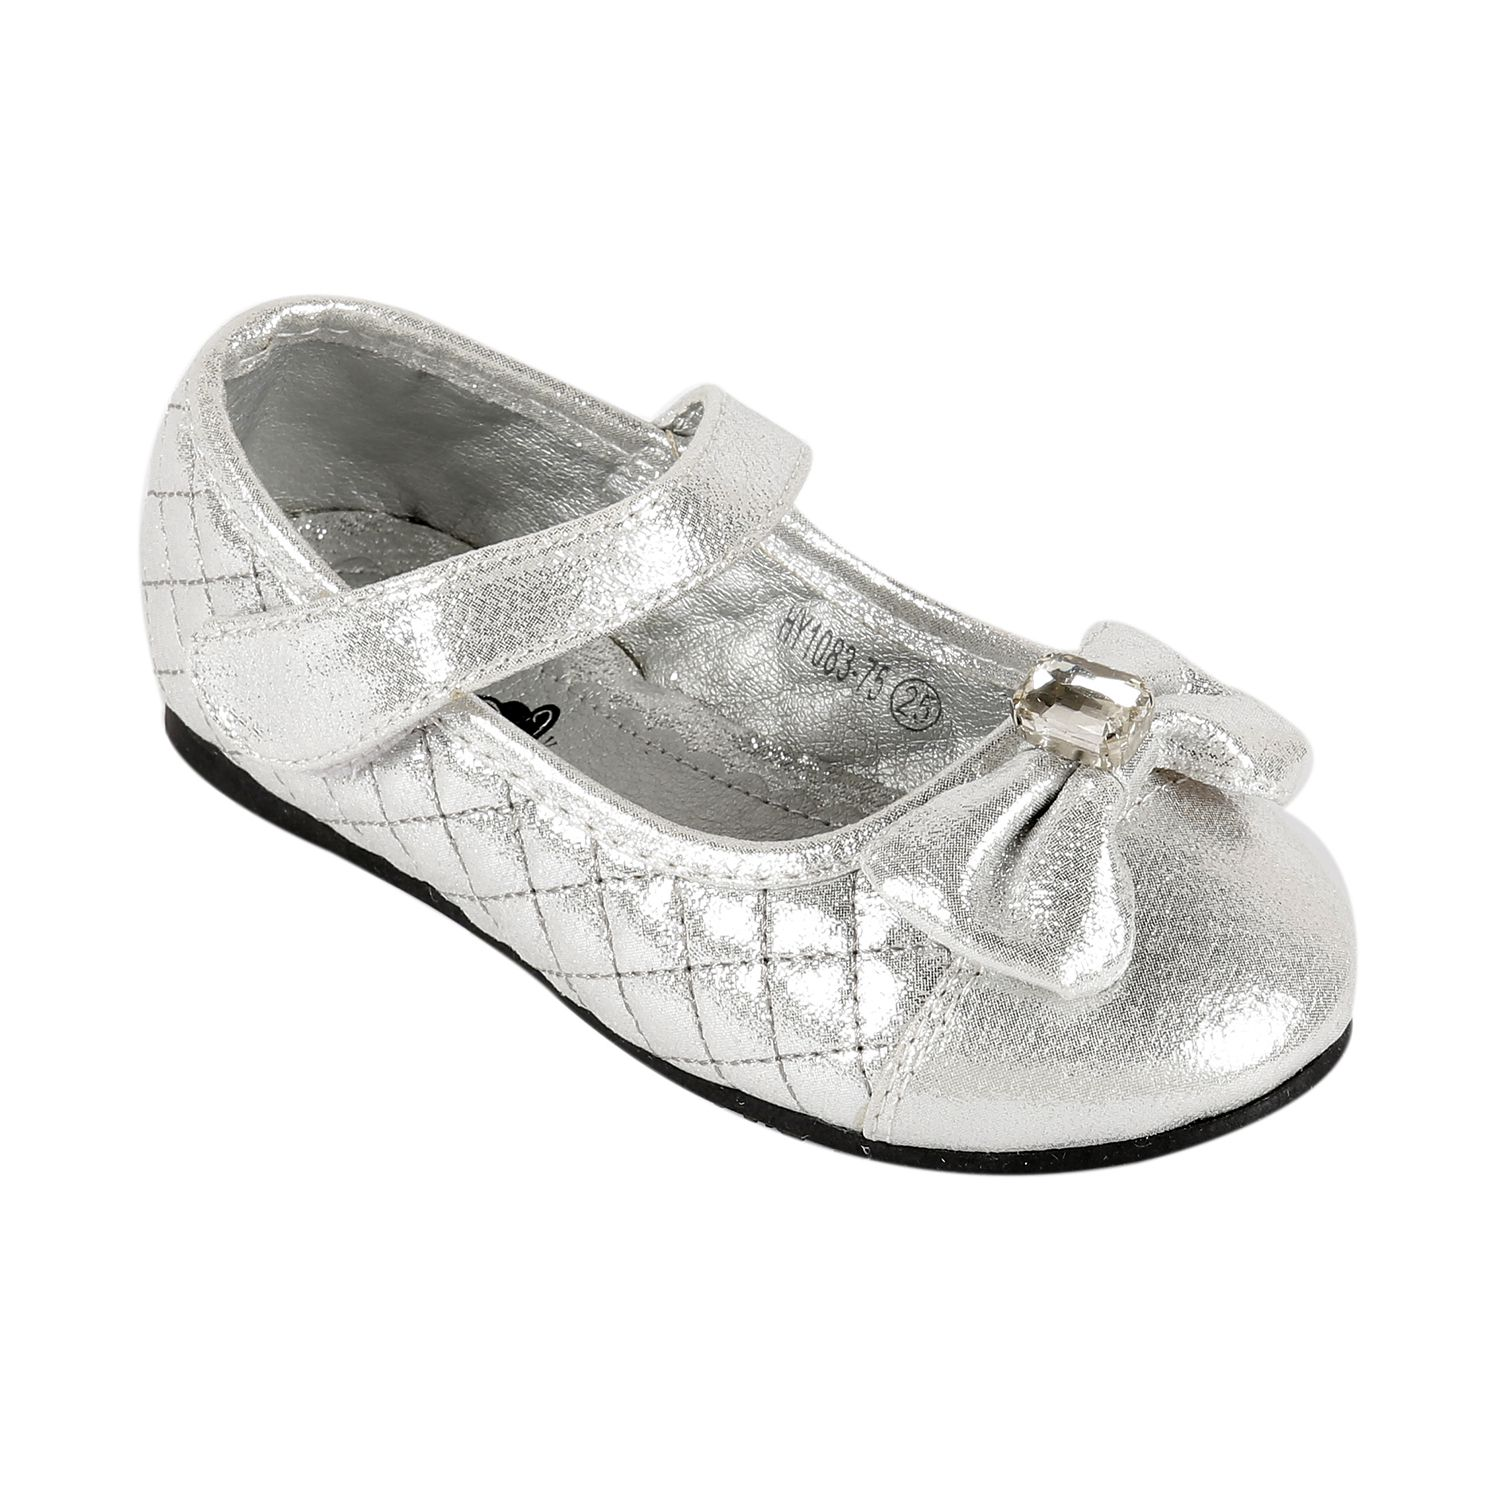 Ash Amaira Kids Shoes Silver Party Casual Ballerinas For Baby Girls